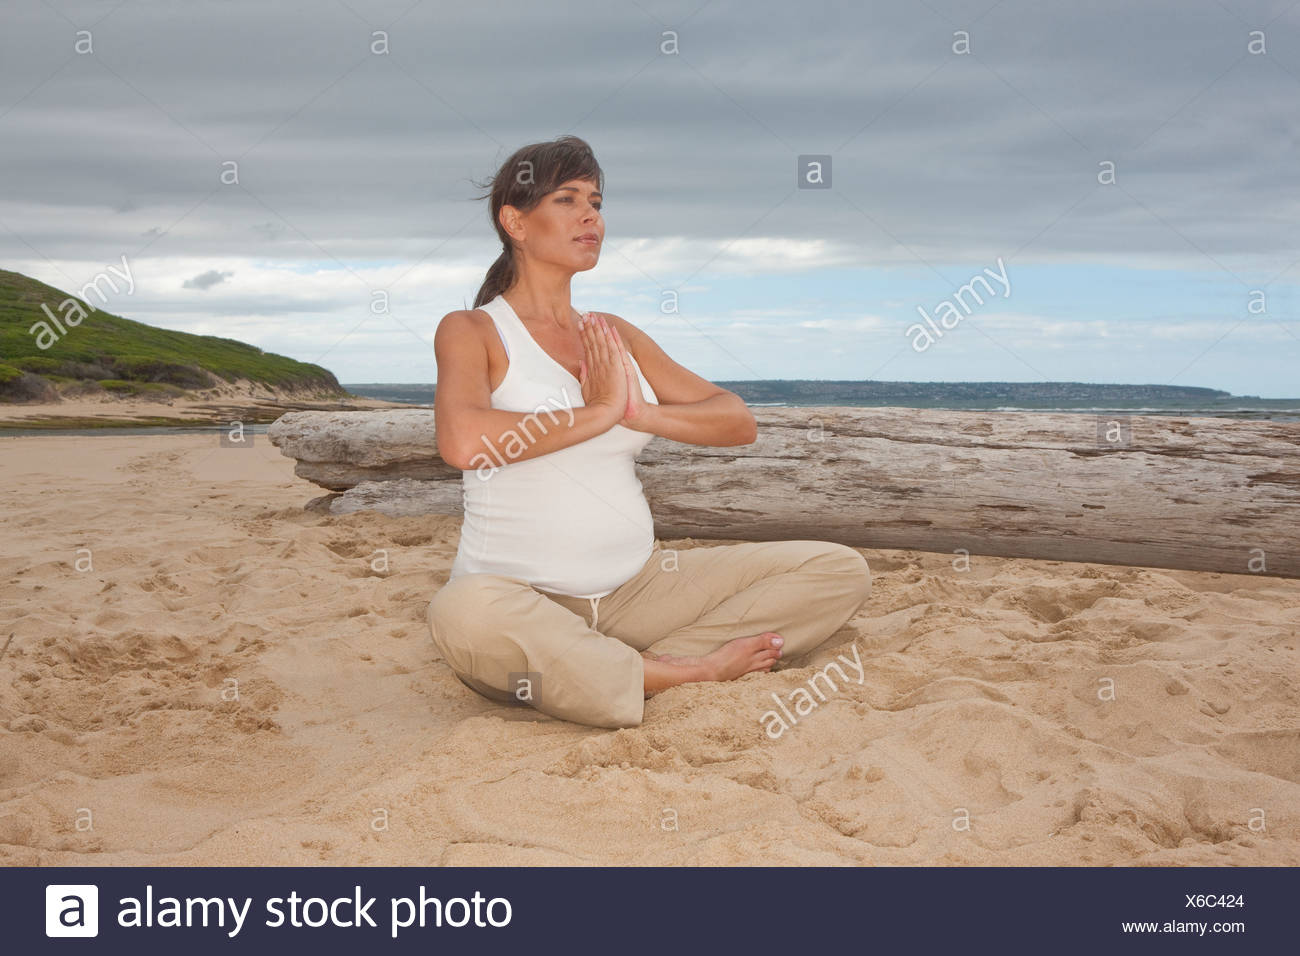 Pregnant mid adult woman practicing yoga on beach Stock Photo